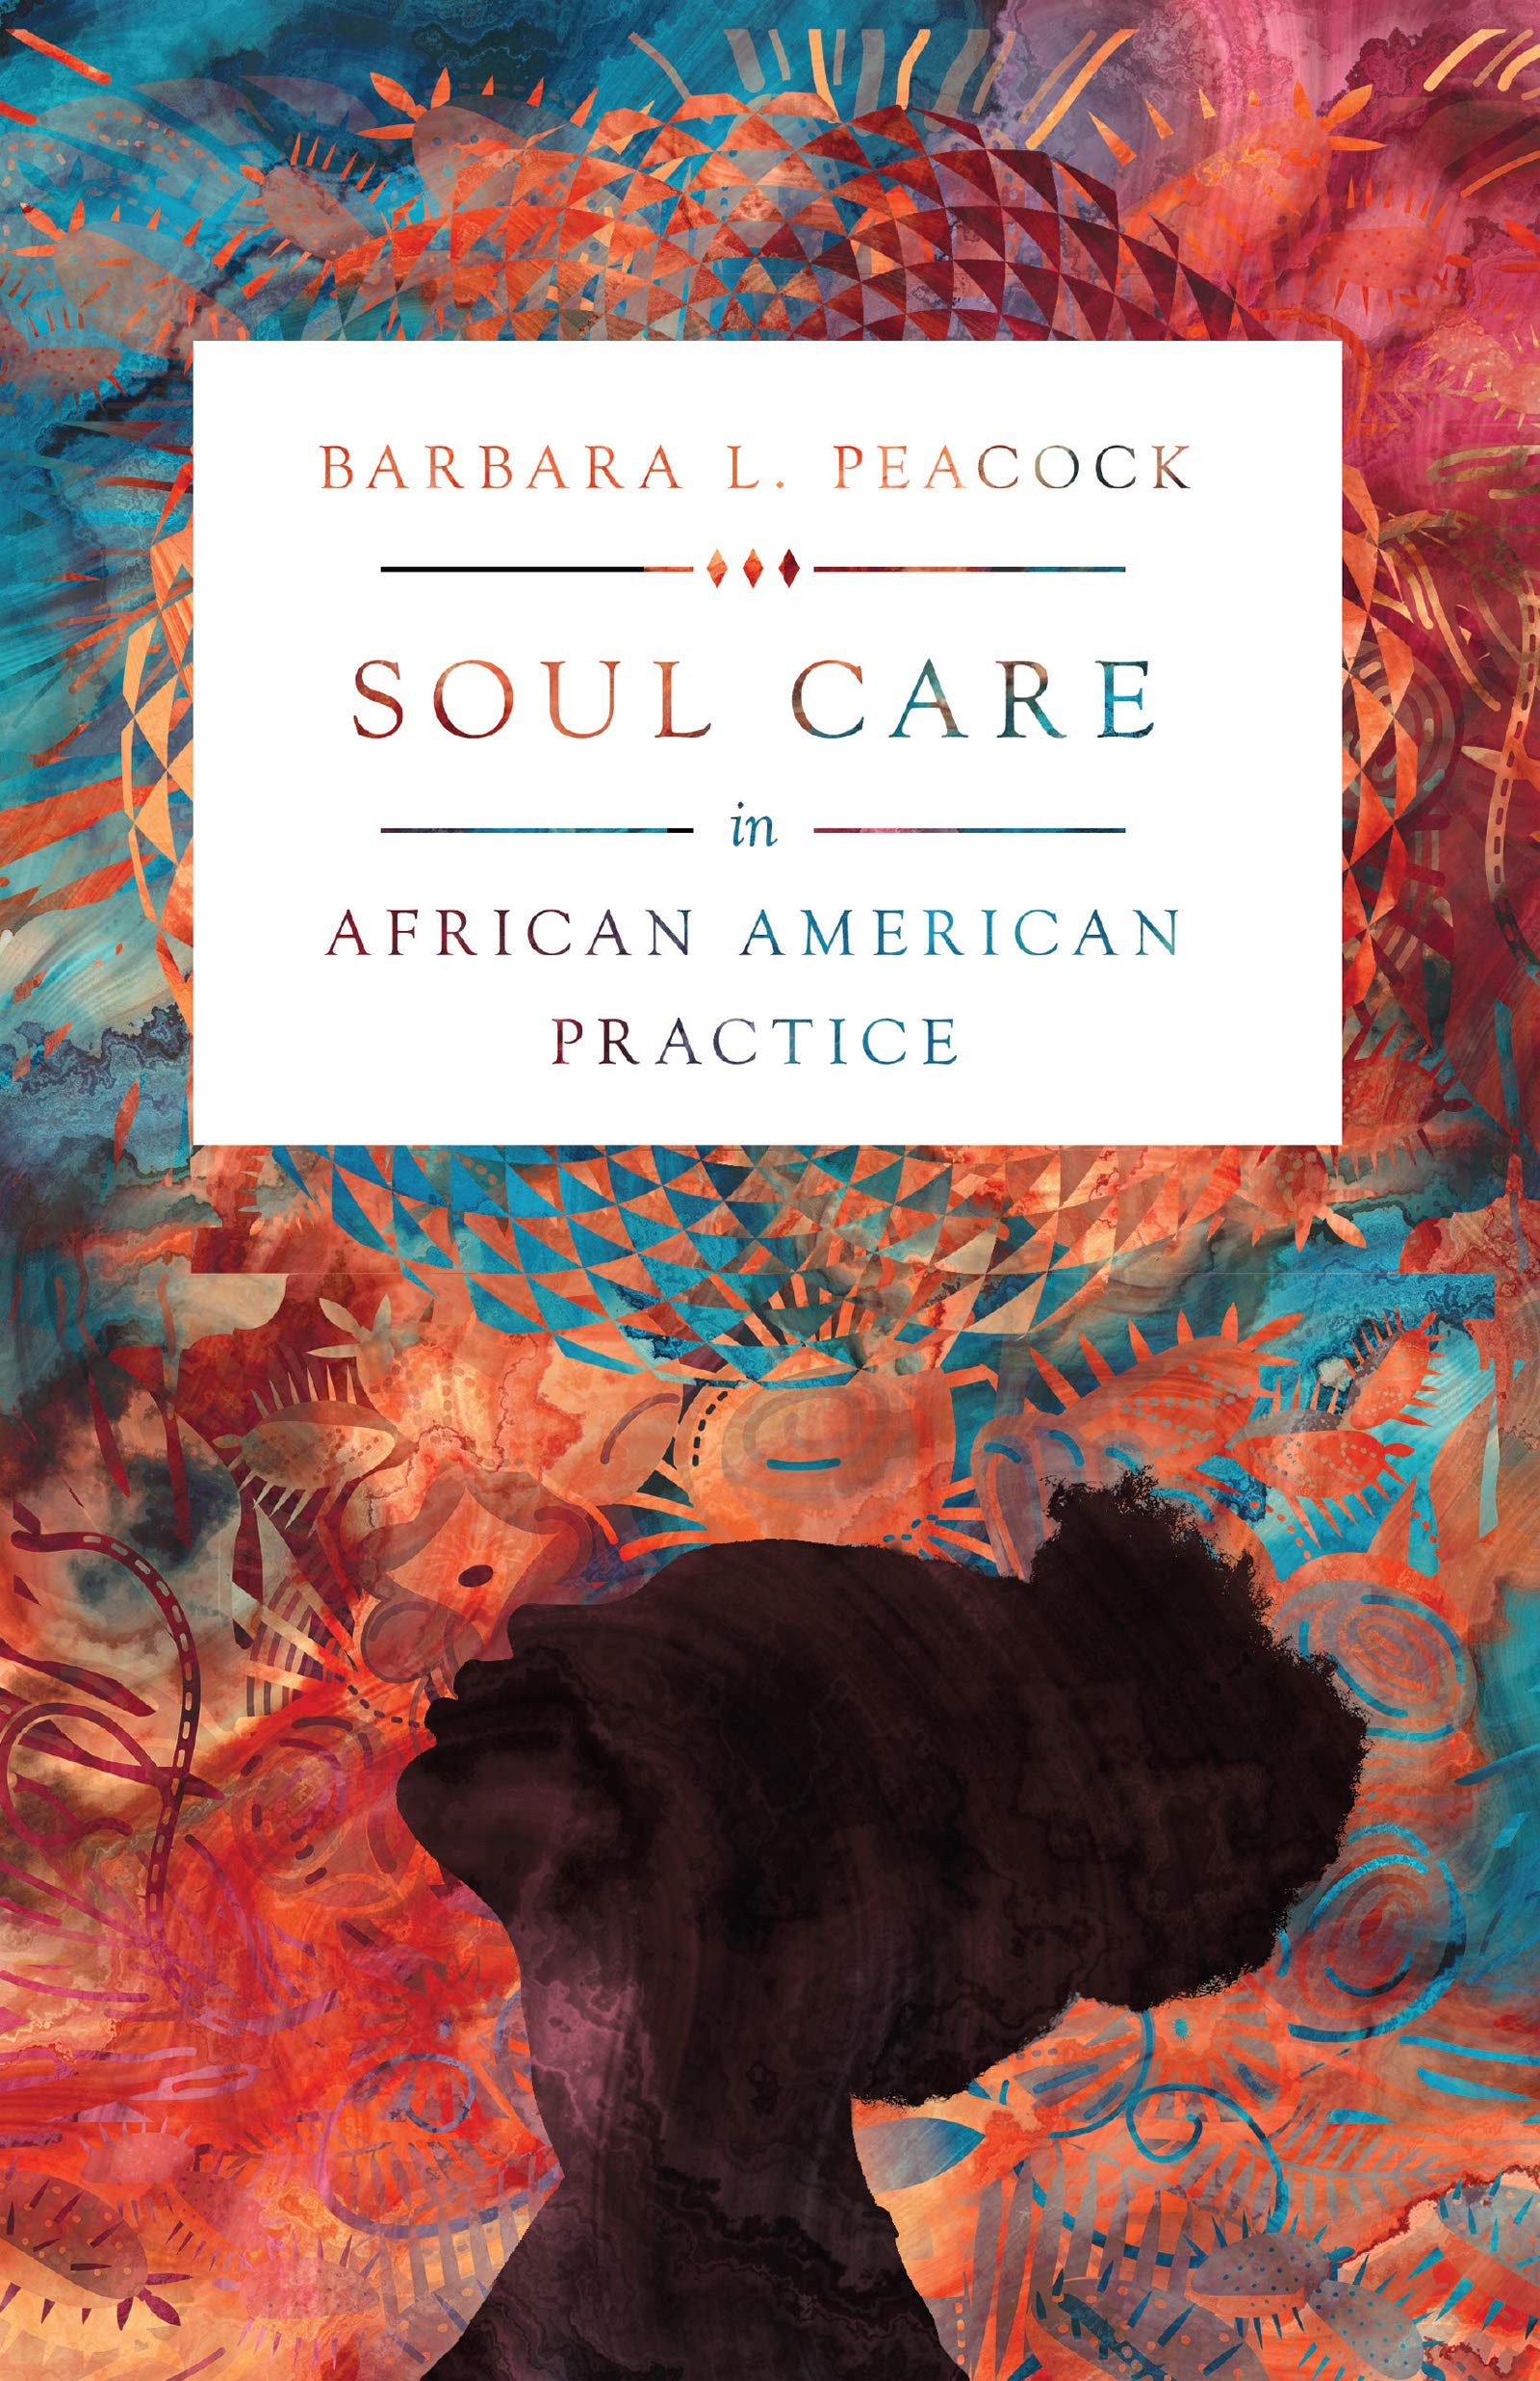 Soul Care in African American Practice: Barbara L. Peacock ...